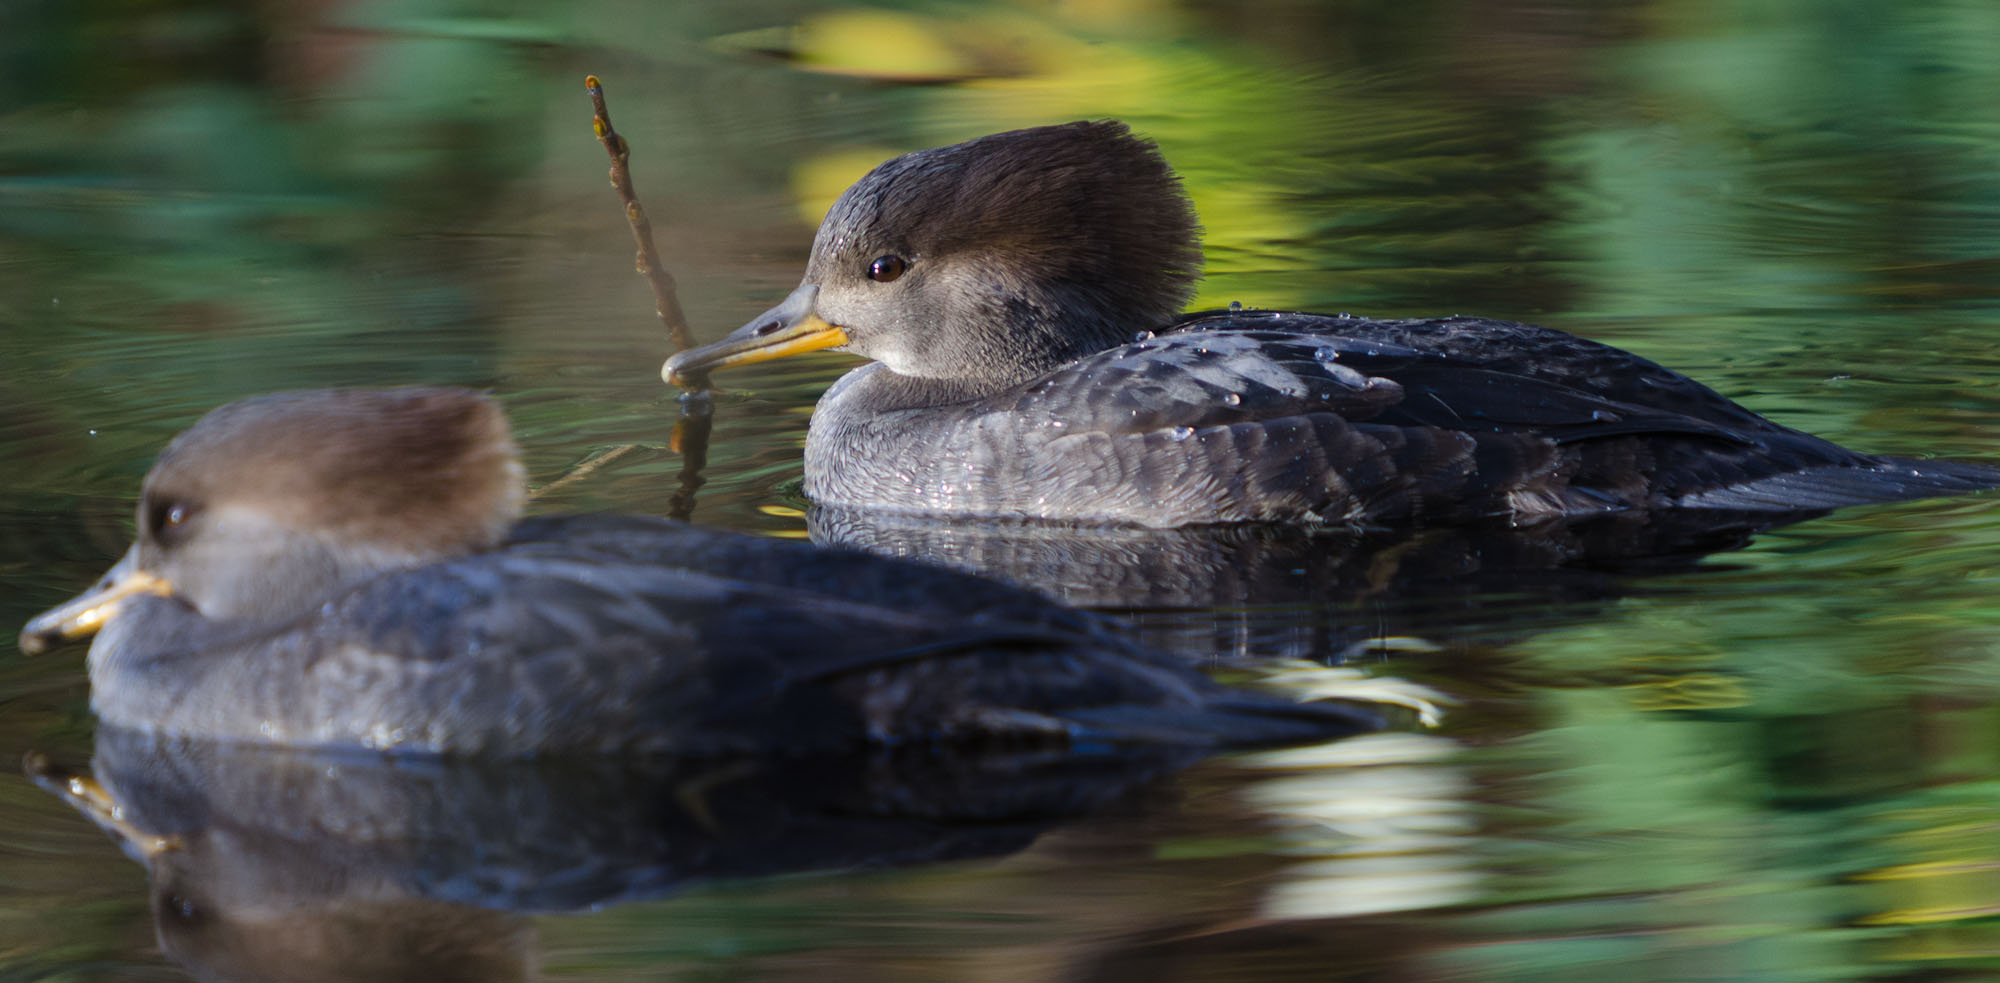 Female Hooded Mergansers. Photo: Don Enright